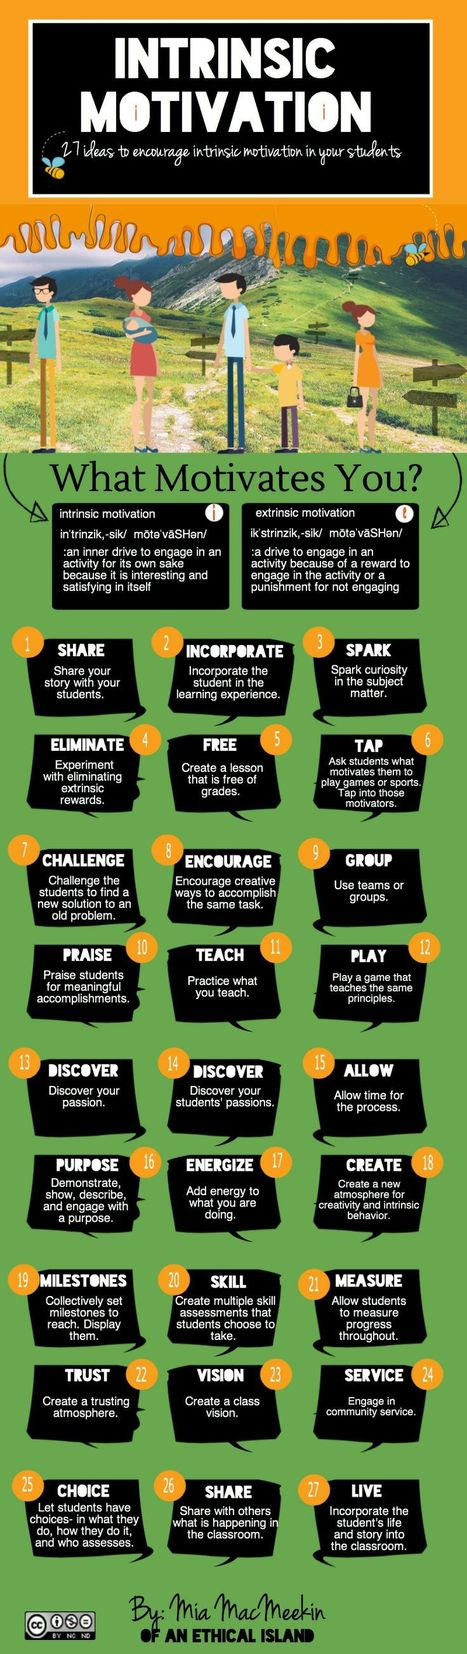 Intrinsic Motivation: Instill It In At Least 27 Ways [INFOGRAPHIC] | Student Engagement for Learning | Scoop.it